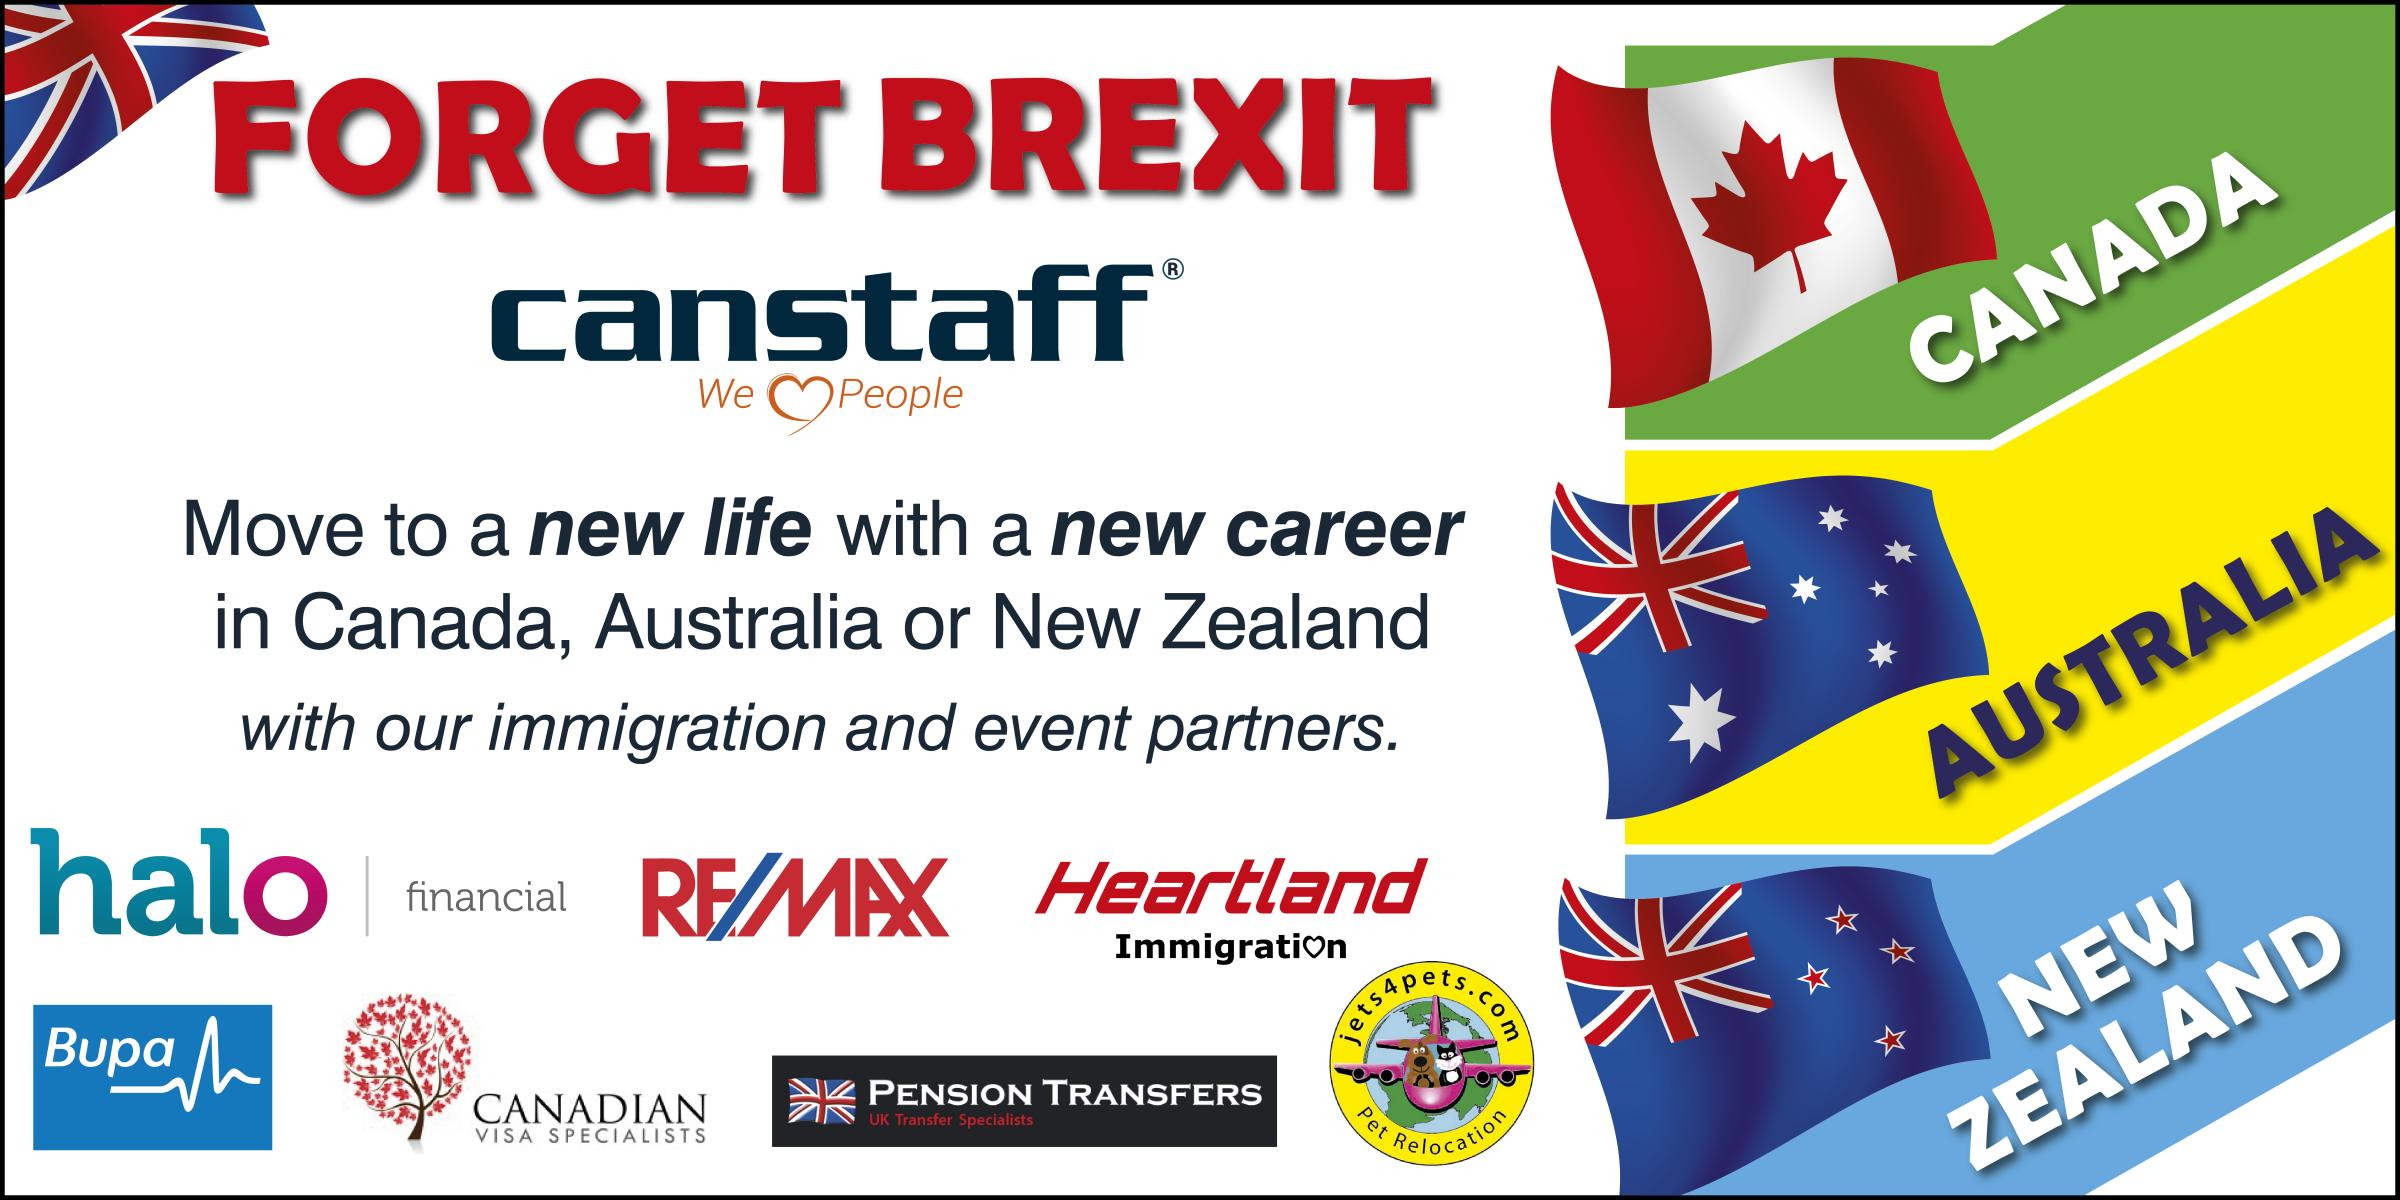 Forget Brexit